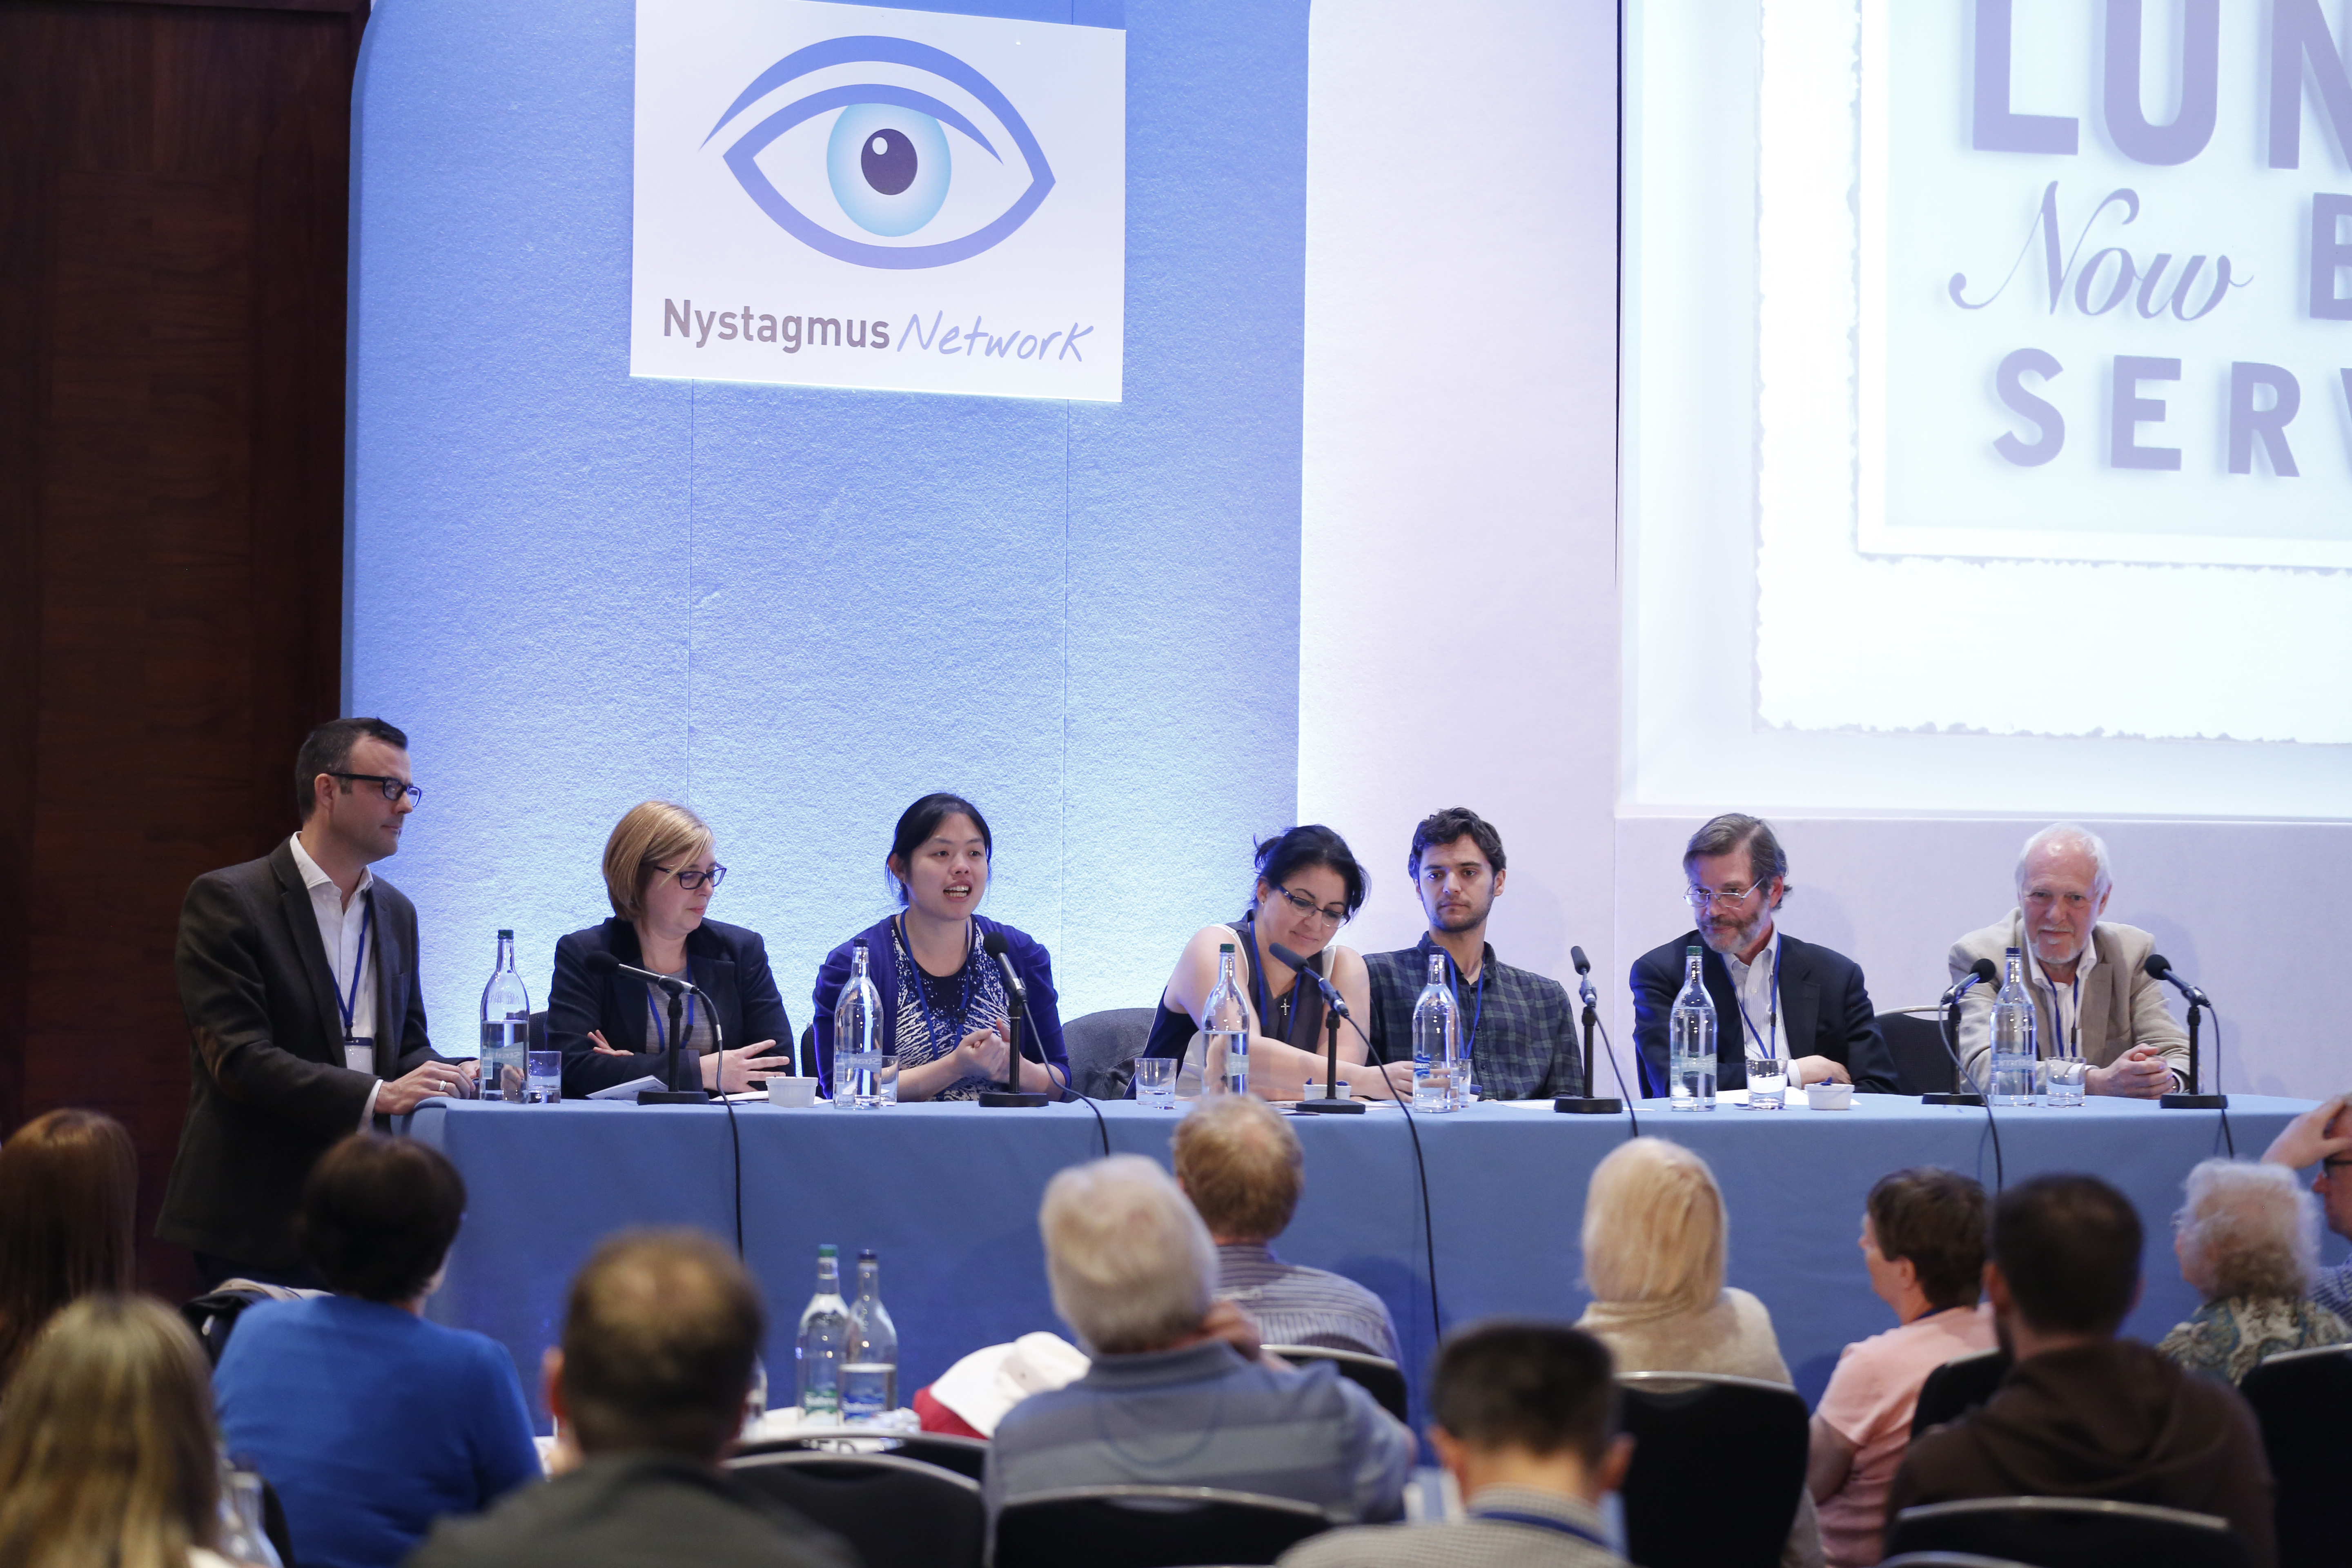 Research investment by the Nystagmus Network